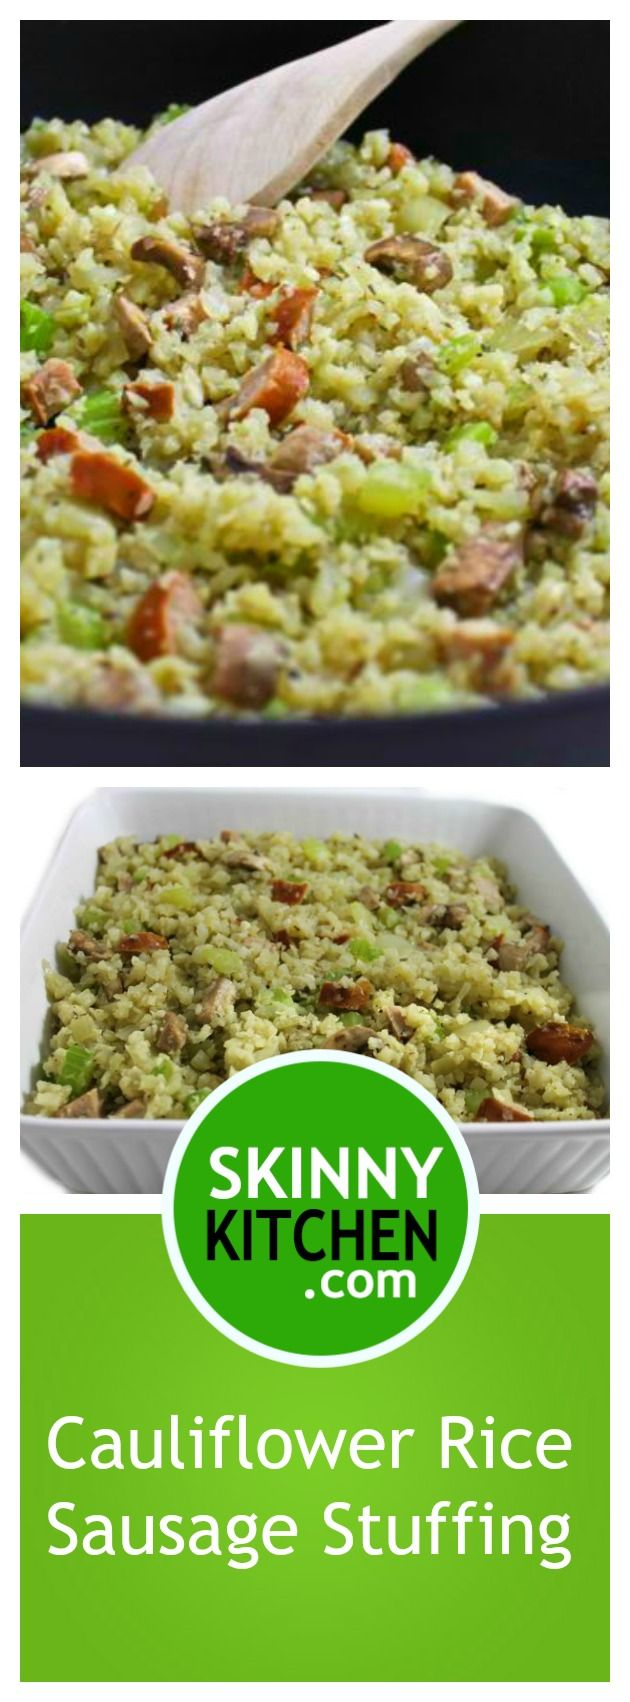 Cauliflower Rice and Sausage Stuffing (Gluten-free, Paleo) Perfect for Thanksgiving, but it's so yummy, I know you'll want to make it often! Each ¾ cup serving has only 64 cal, 3g fat and 1 SmartPoints. http://www.skinnykitchen.com/recipes/cauliflower-rice-and-sausage-stuffing-gluten-free-paleo-